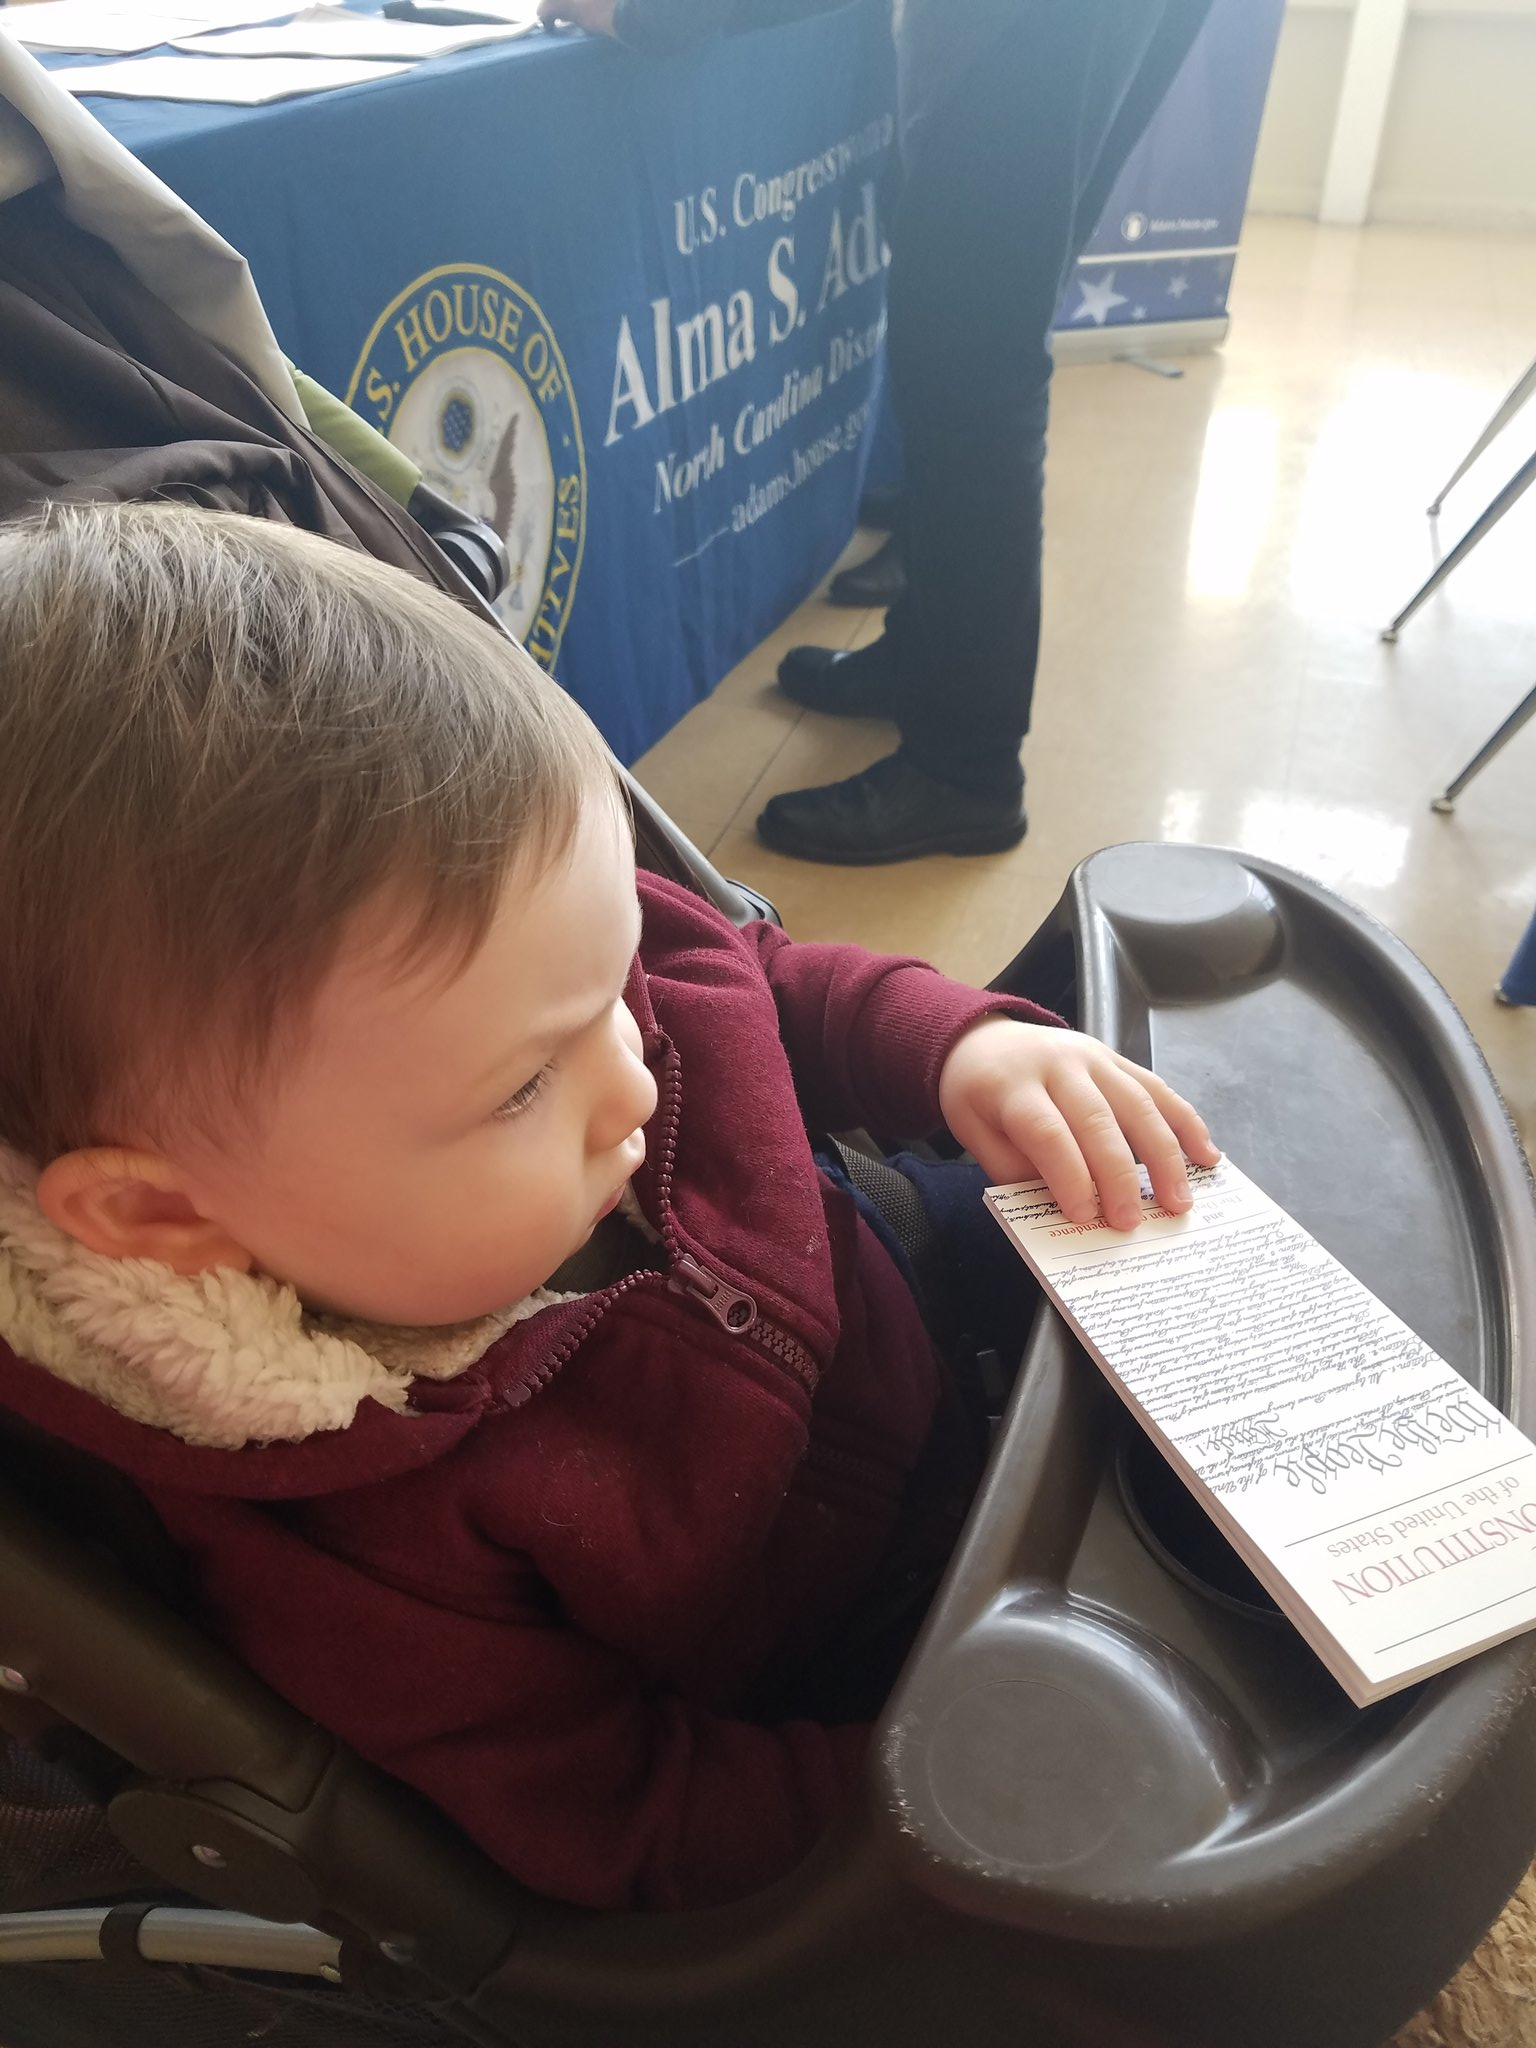 A little light reading at @RepAdams office hours in #huntersville..#startemyoung @jonlovett @jonfavs @TVietor08 #resistancerecess https://t.co/NDCEI8AKEn